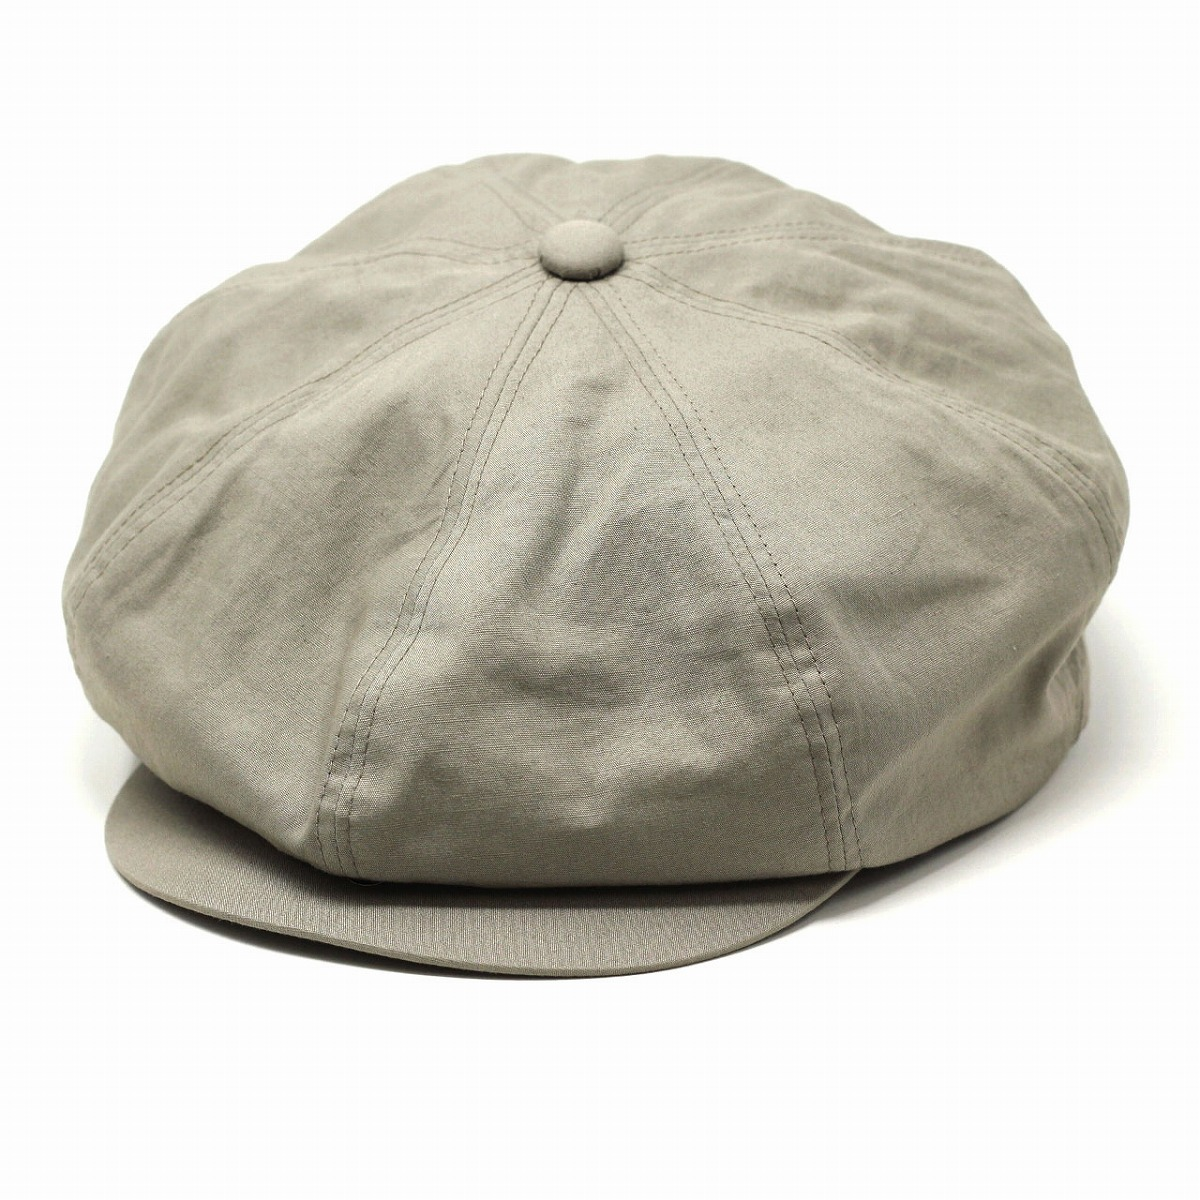 e6bf011b6 CAS Cass linen cotton hemp weather casual / medium size large size / gray  [newsboy cap] made in racal hat 8 panel casquette hat men lady's Japan  where ...